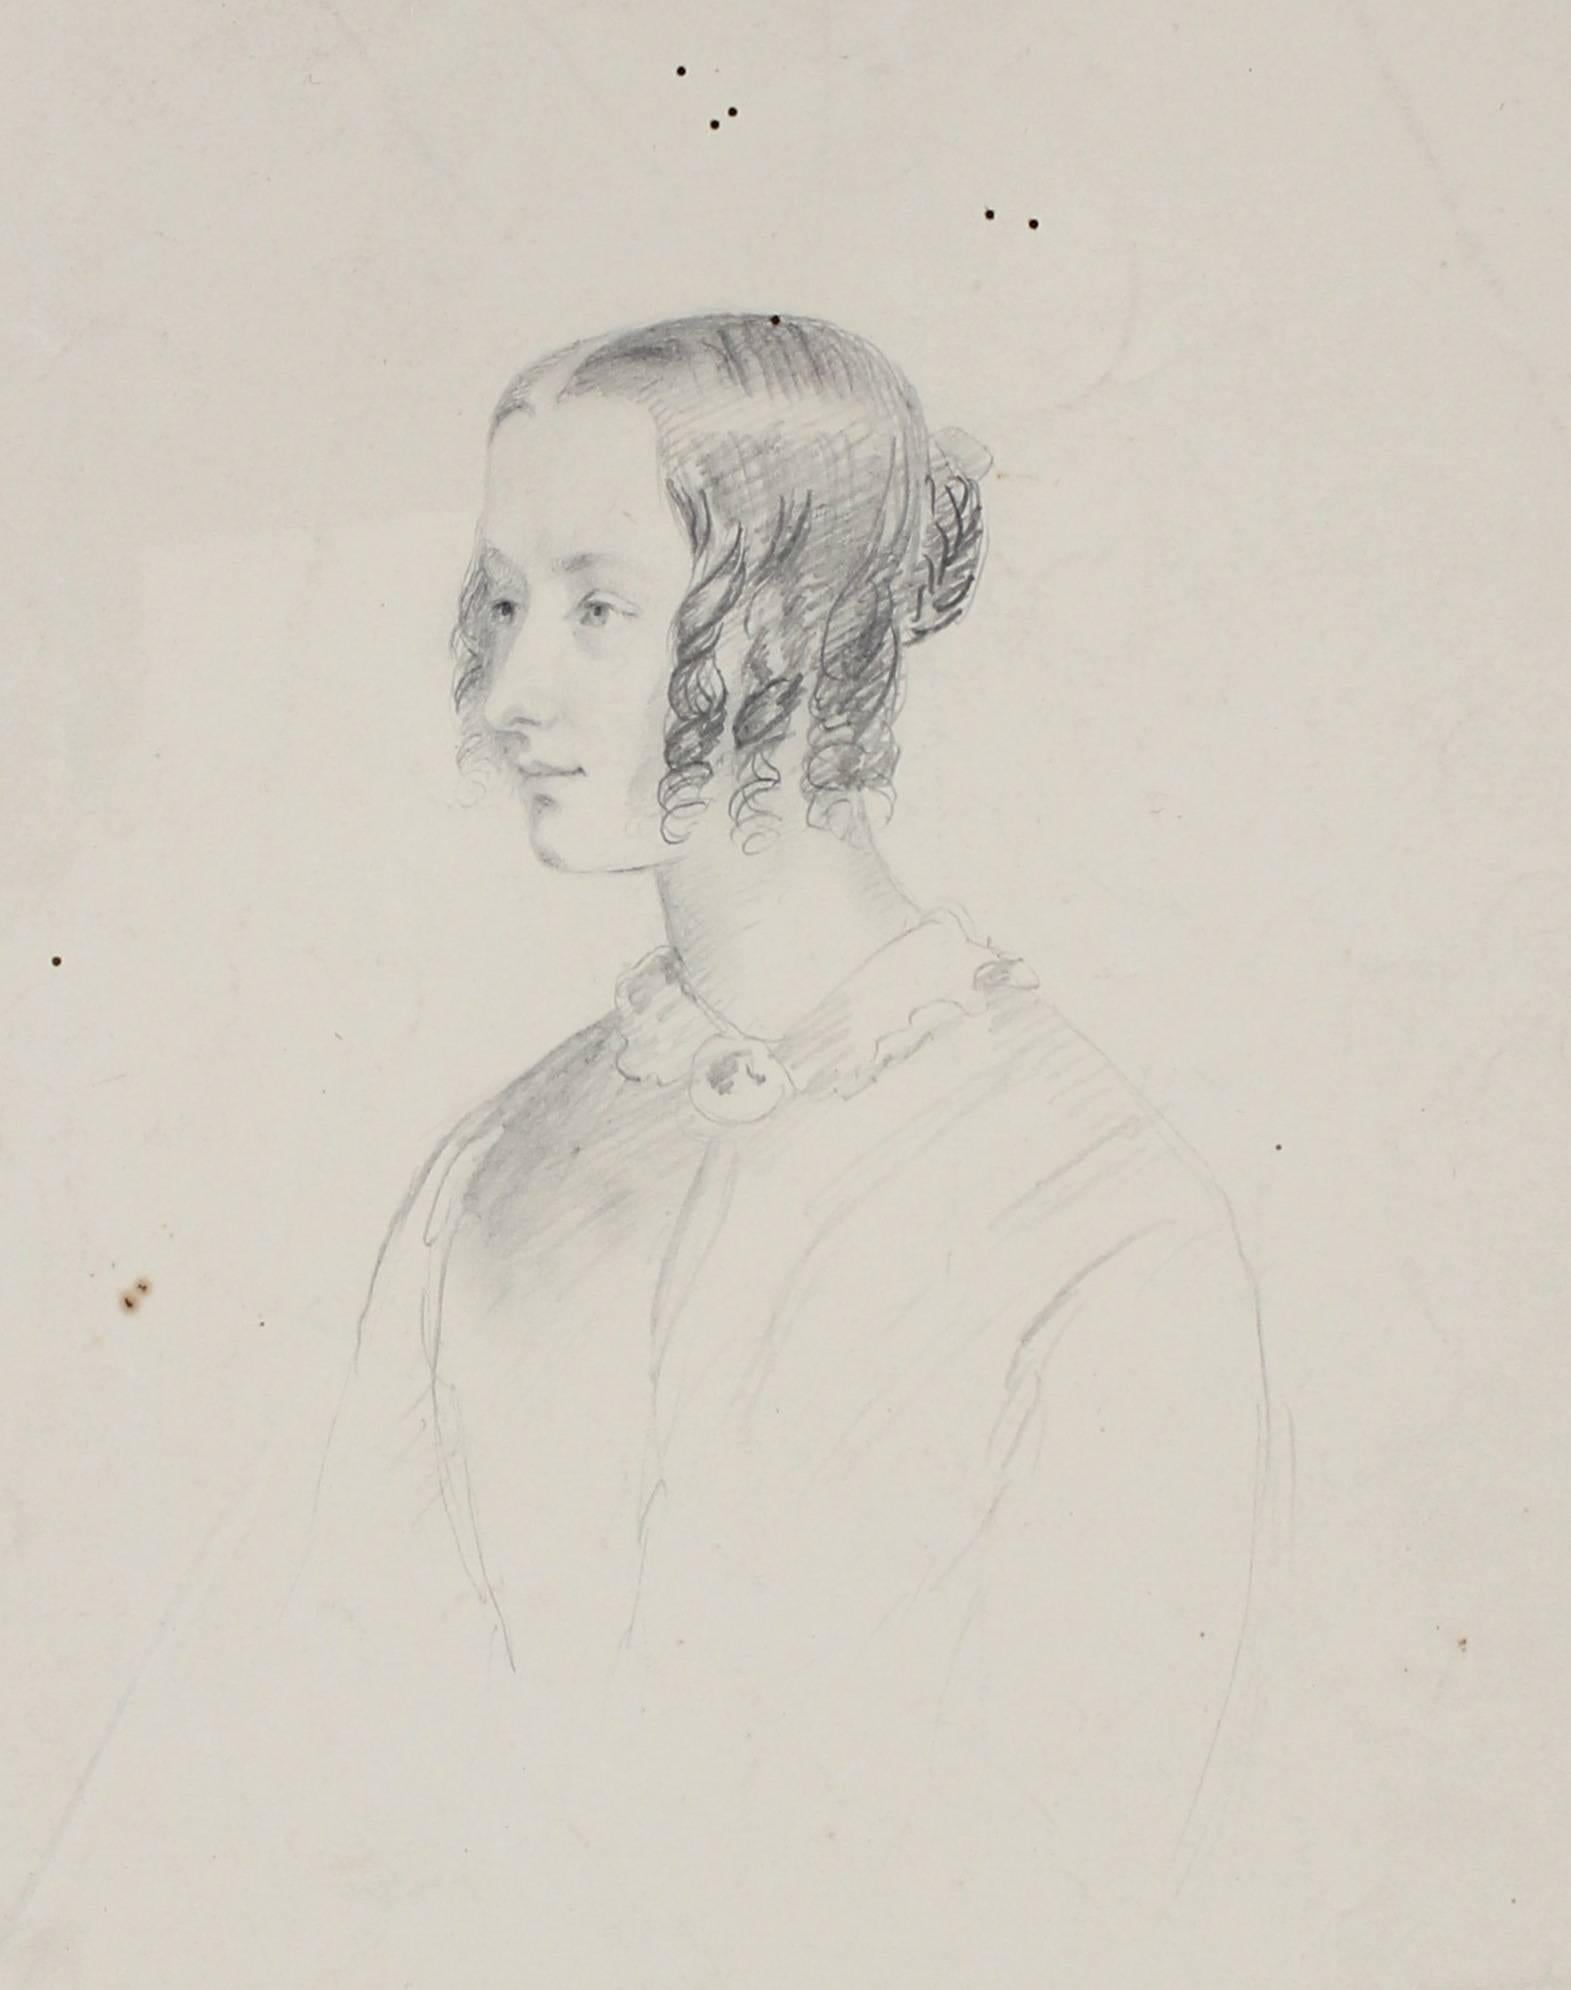 Graphite Portrait of a Woman, Early 1800s